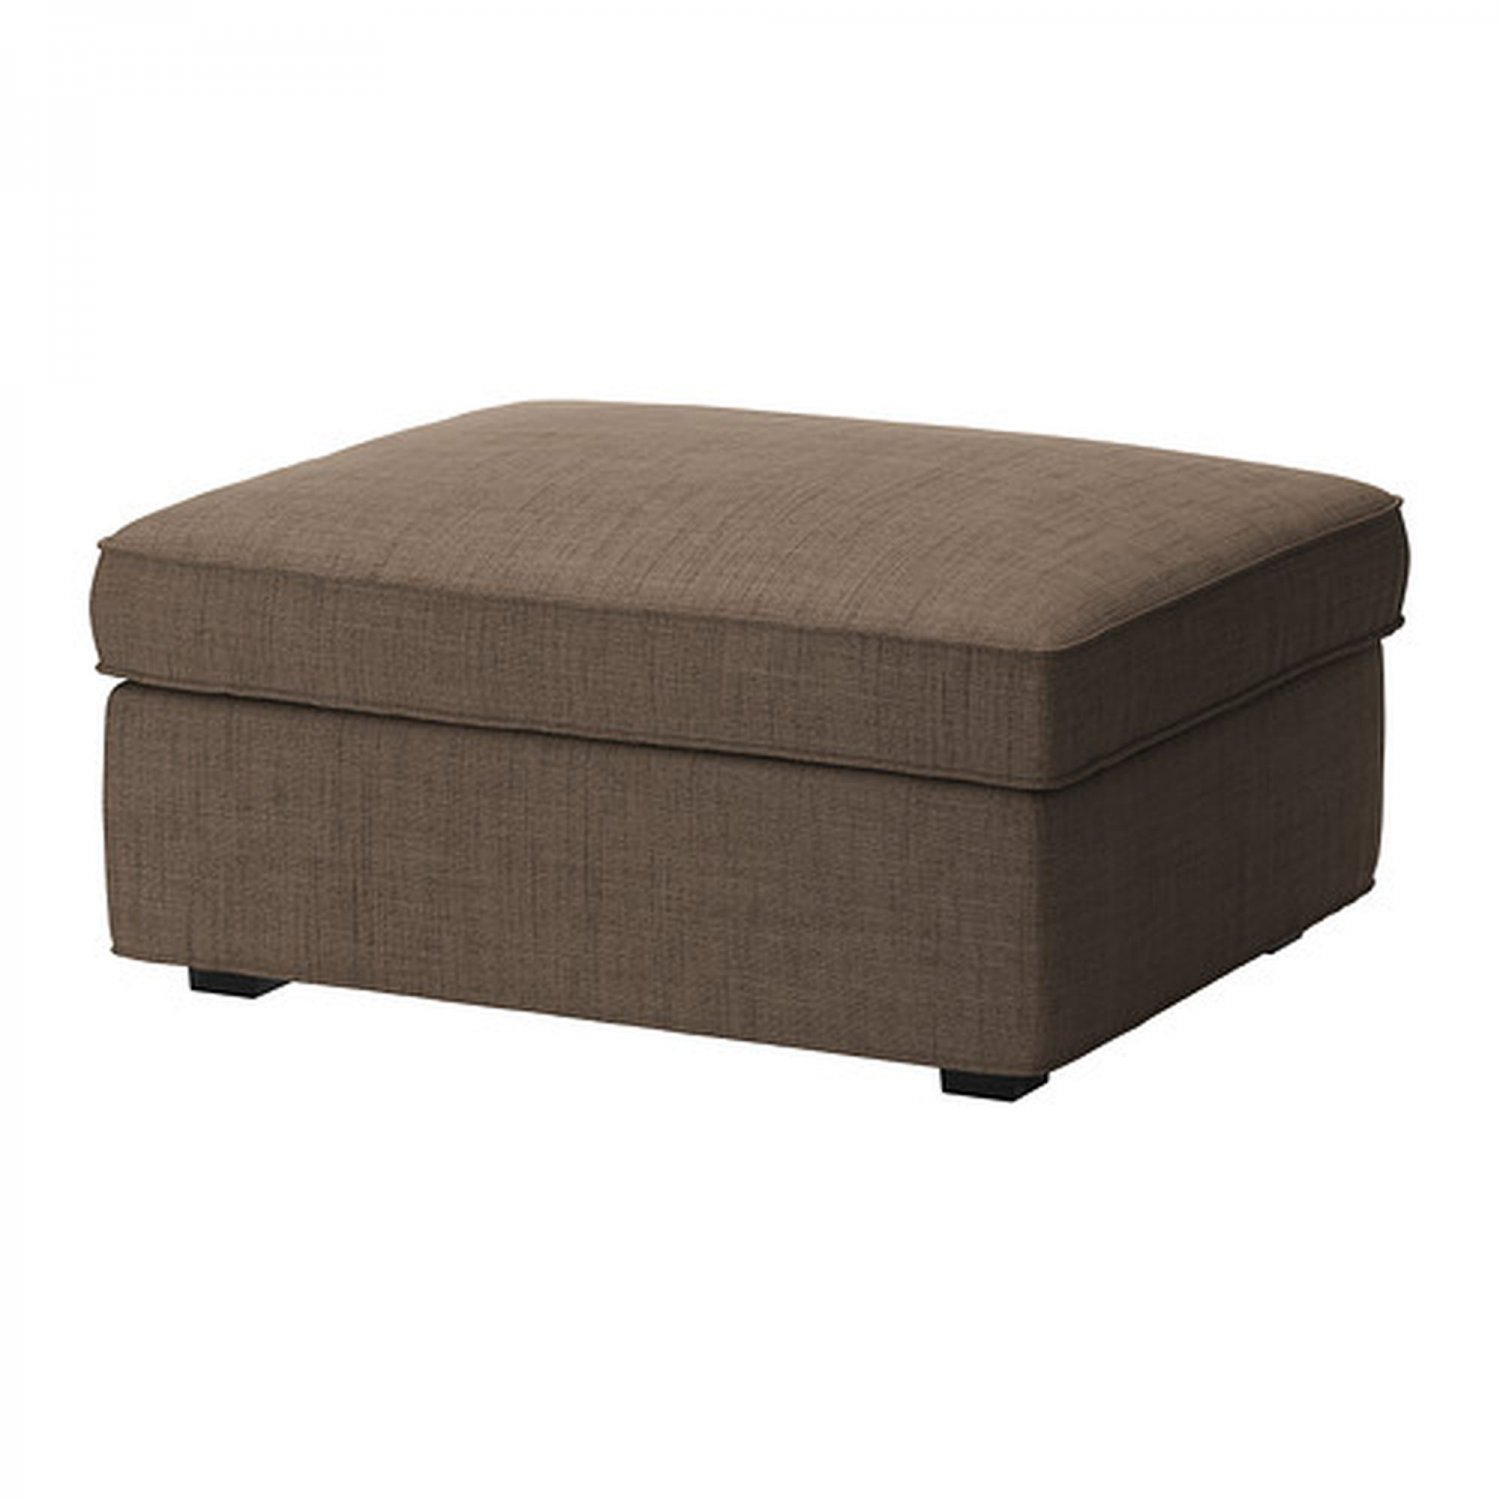 ikea kivik footstool slipcover ottoman cover isunda brown. Black Bedroom Furniture Sets. Home Design Ideas